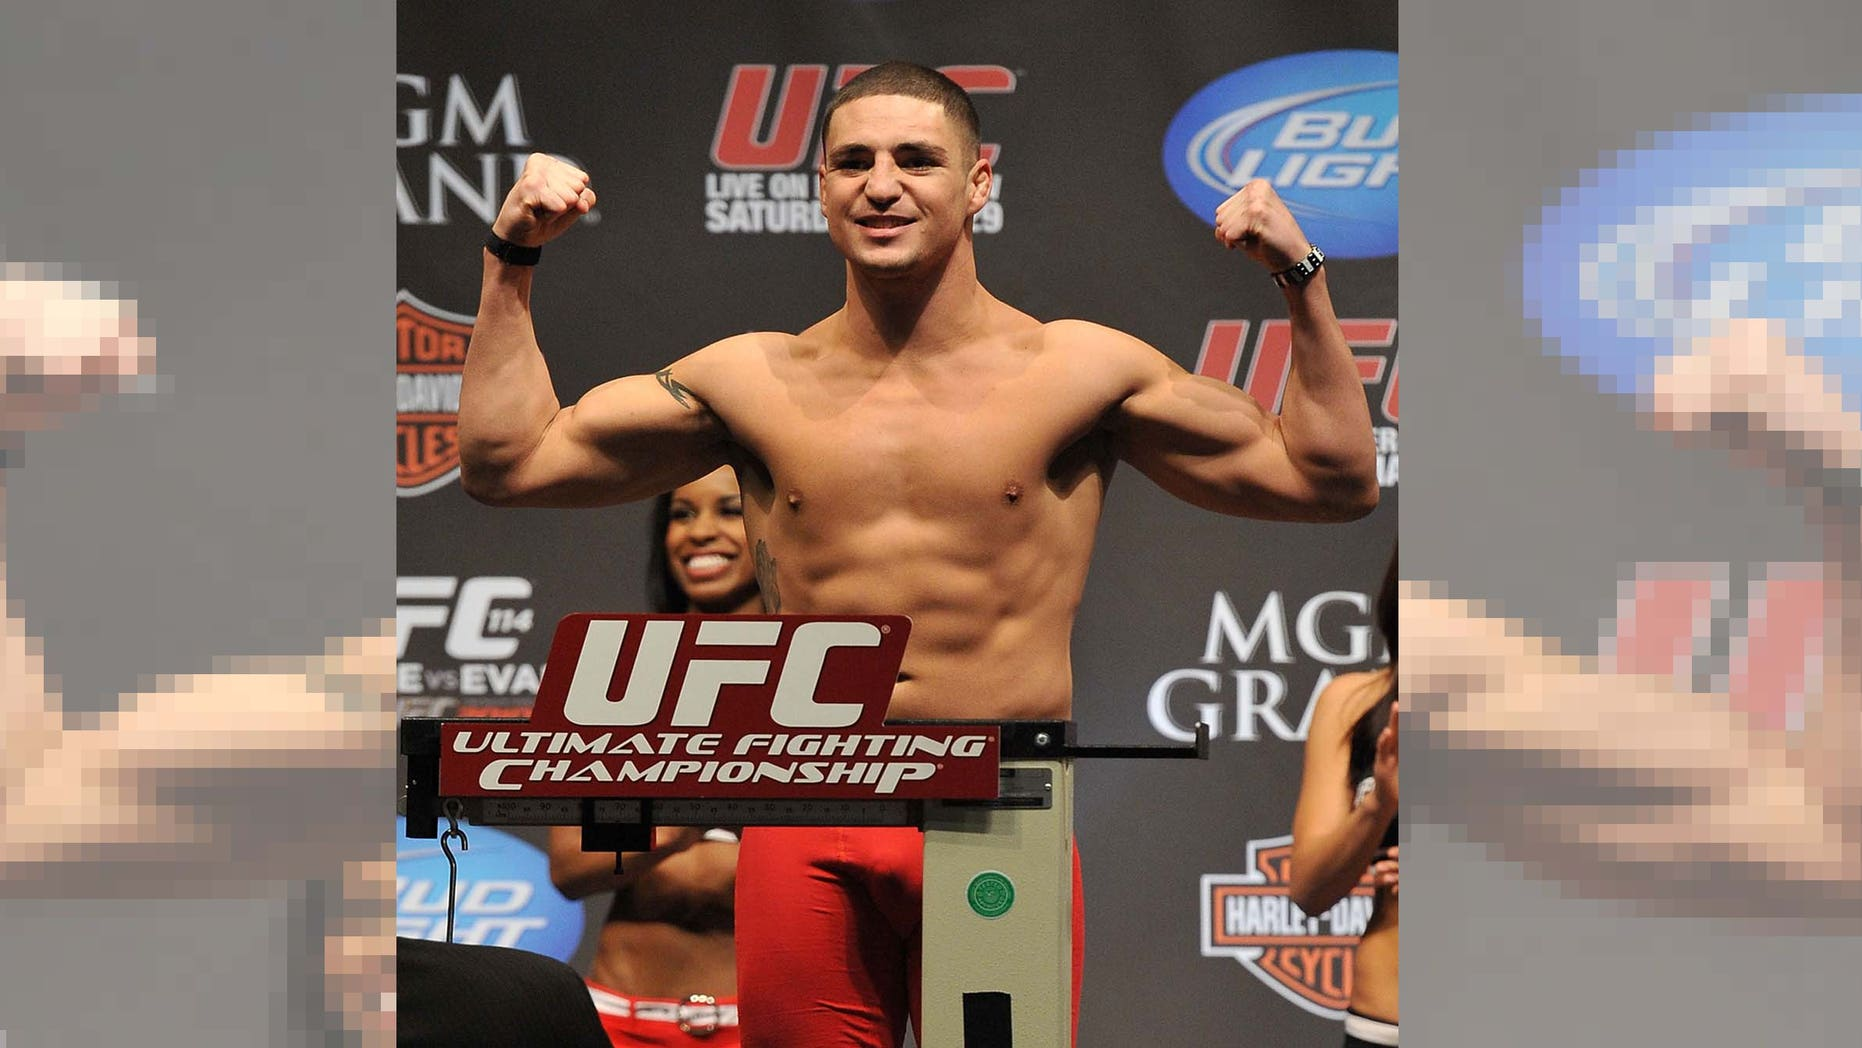 """Diego """"The Dream"""" Sanchez faces Jake Ellenberger in a UFC welterweight contenders match."""